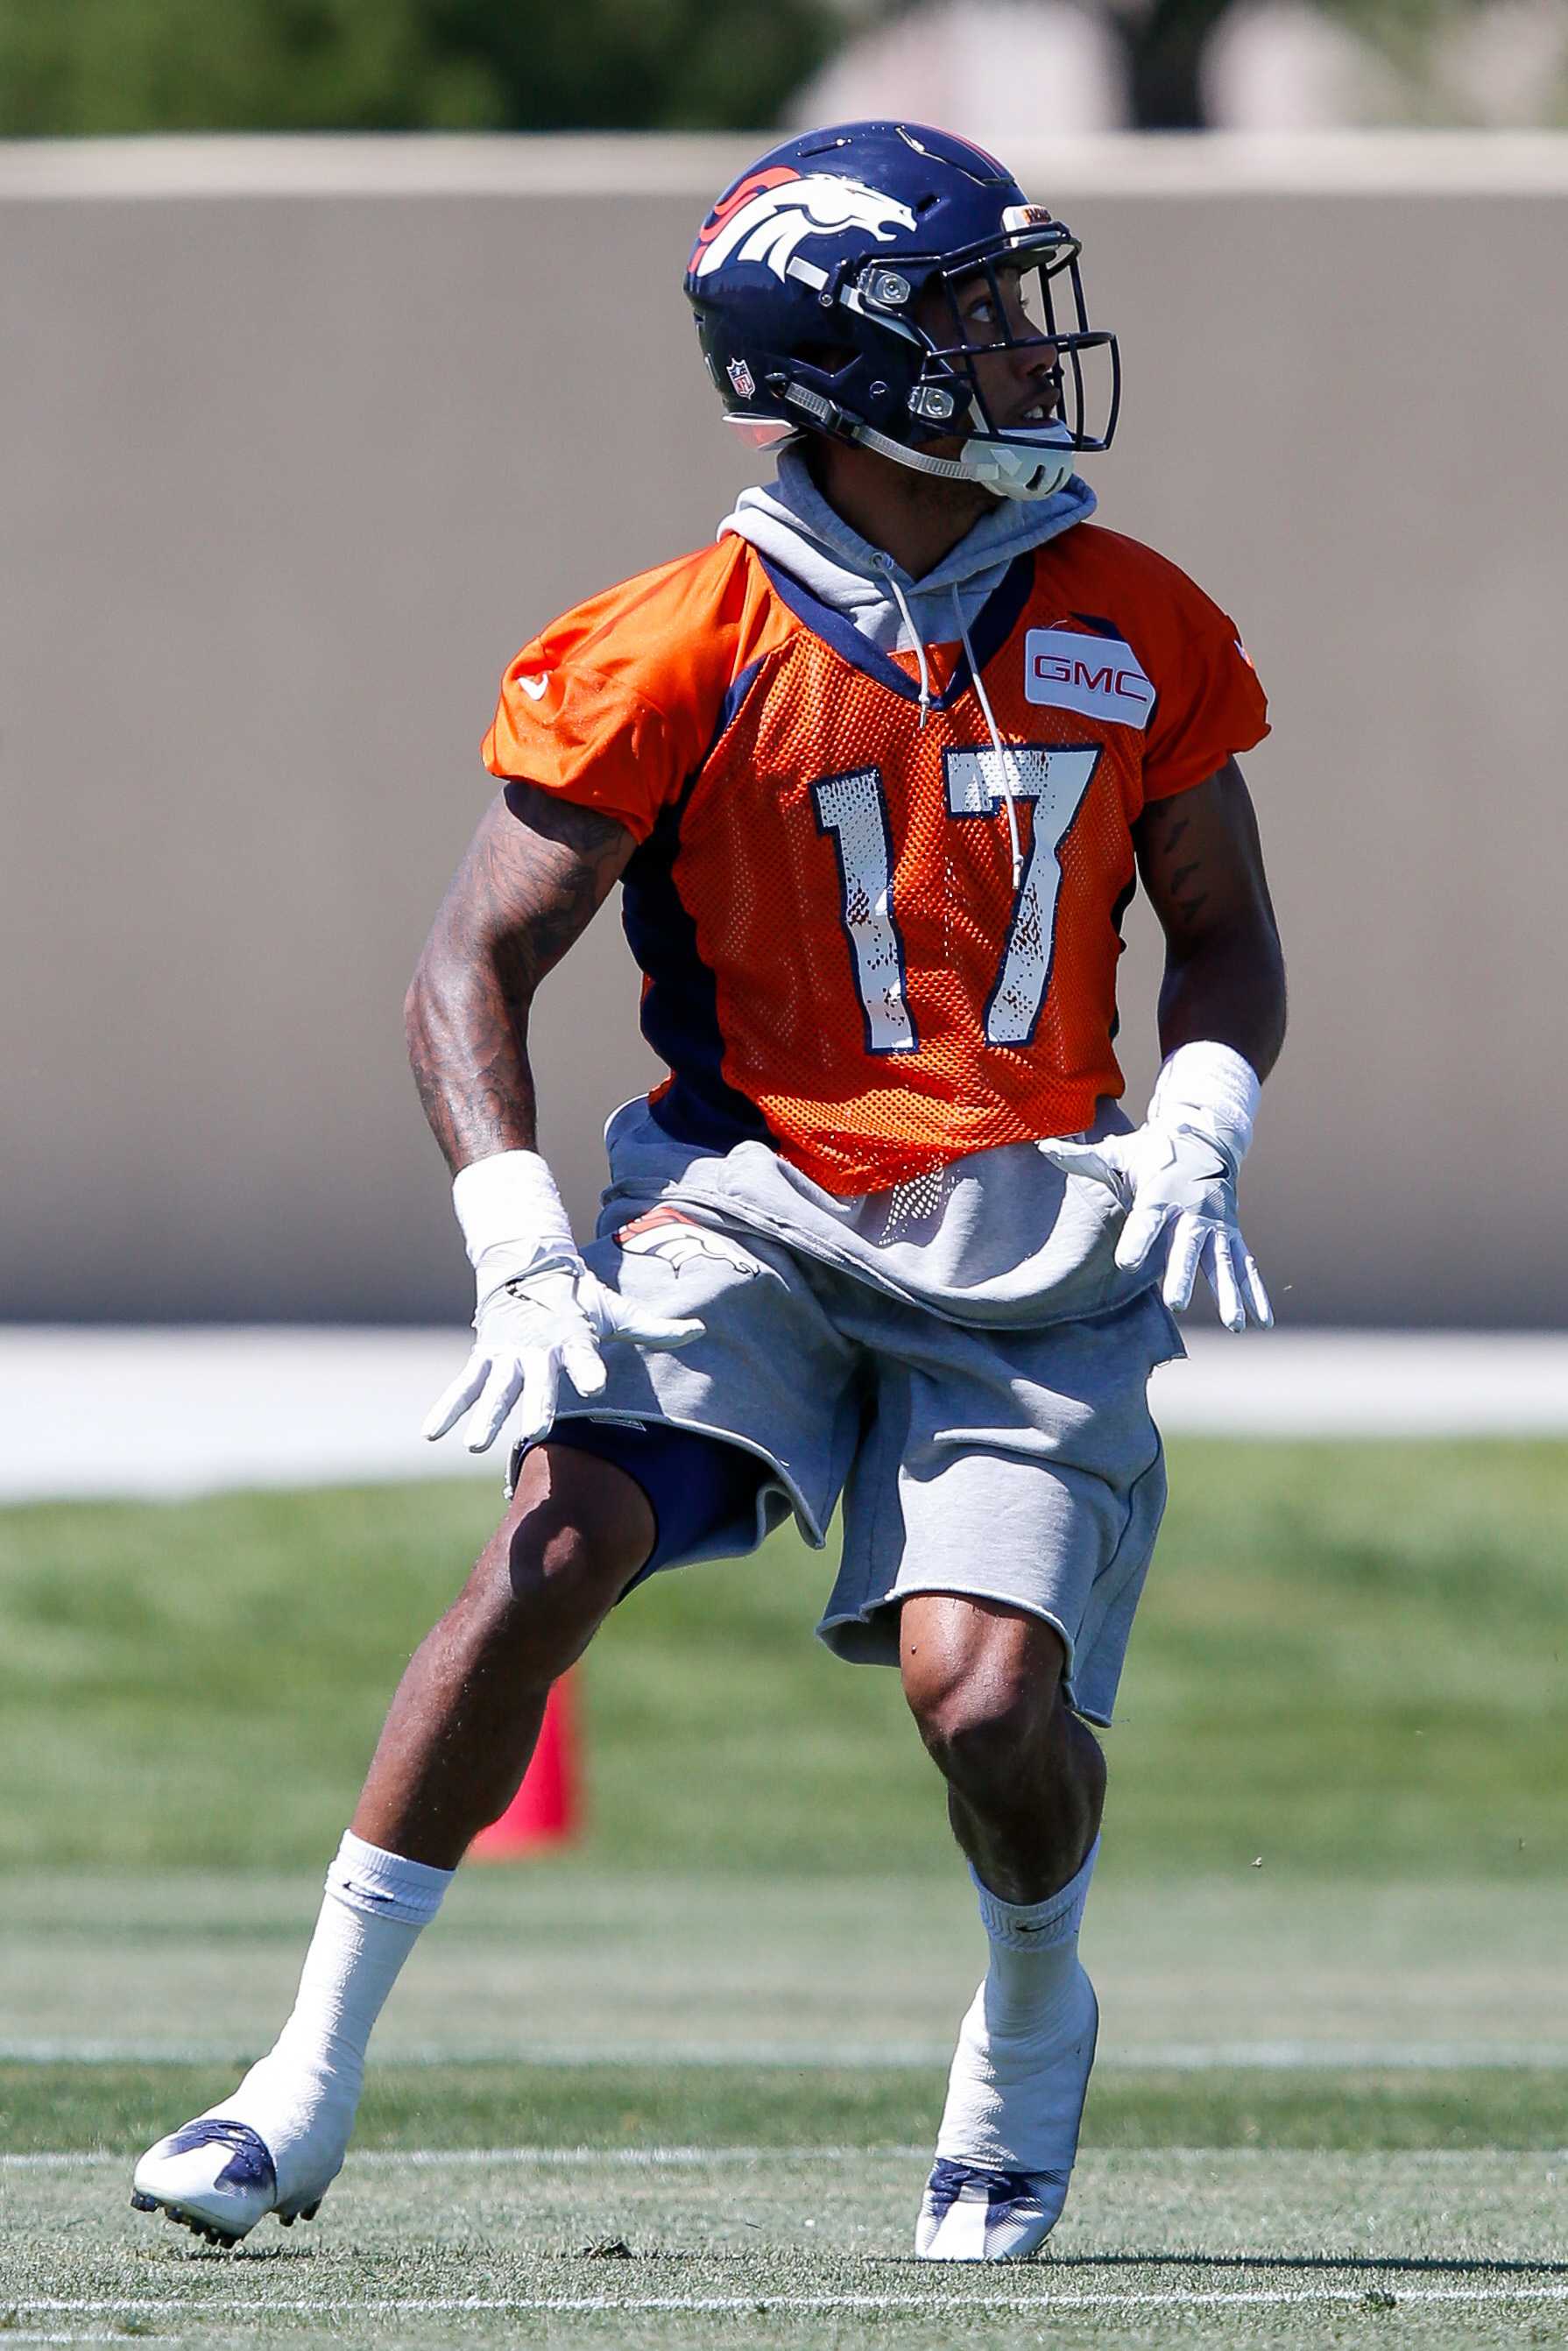 Denver Broncos: Five players who could surprise and make the roster